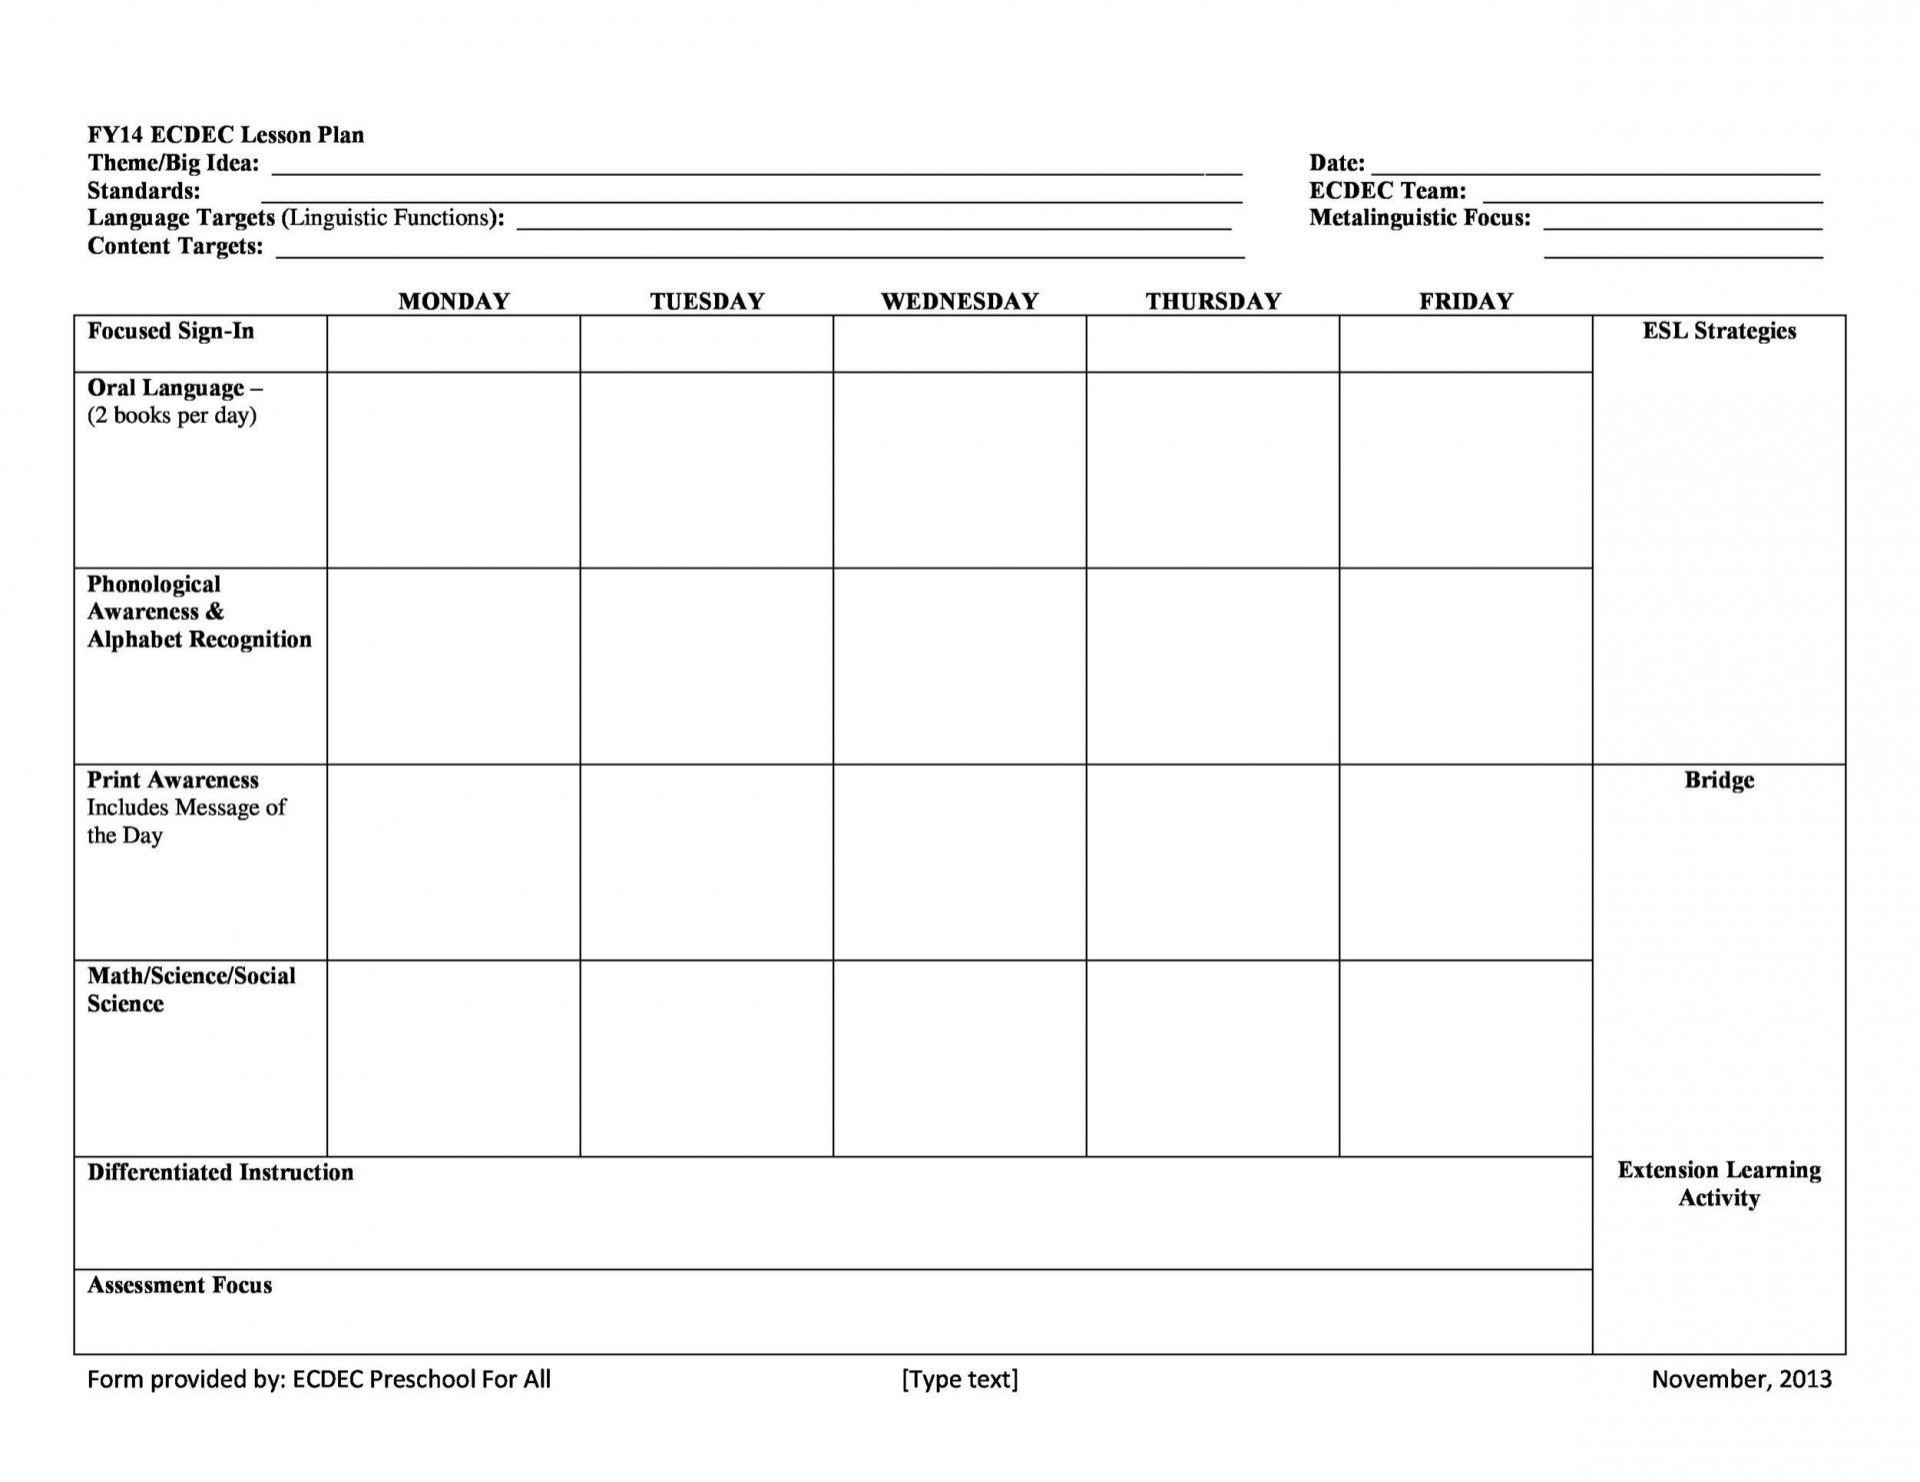 002 Best Printable Lesson Plan Template Free Image  Preschool Weekly Pdf For Toddler1920